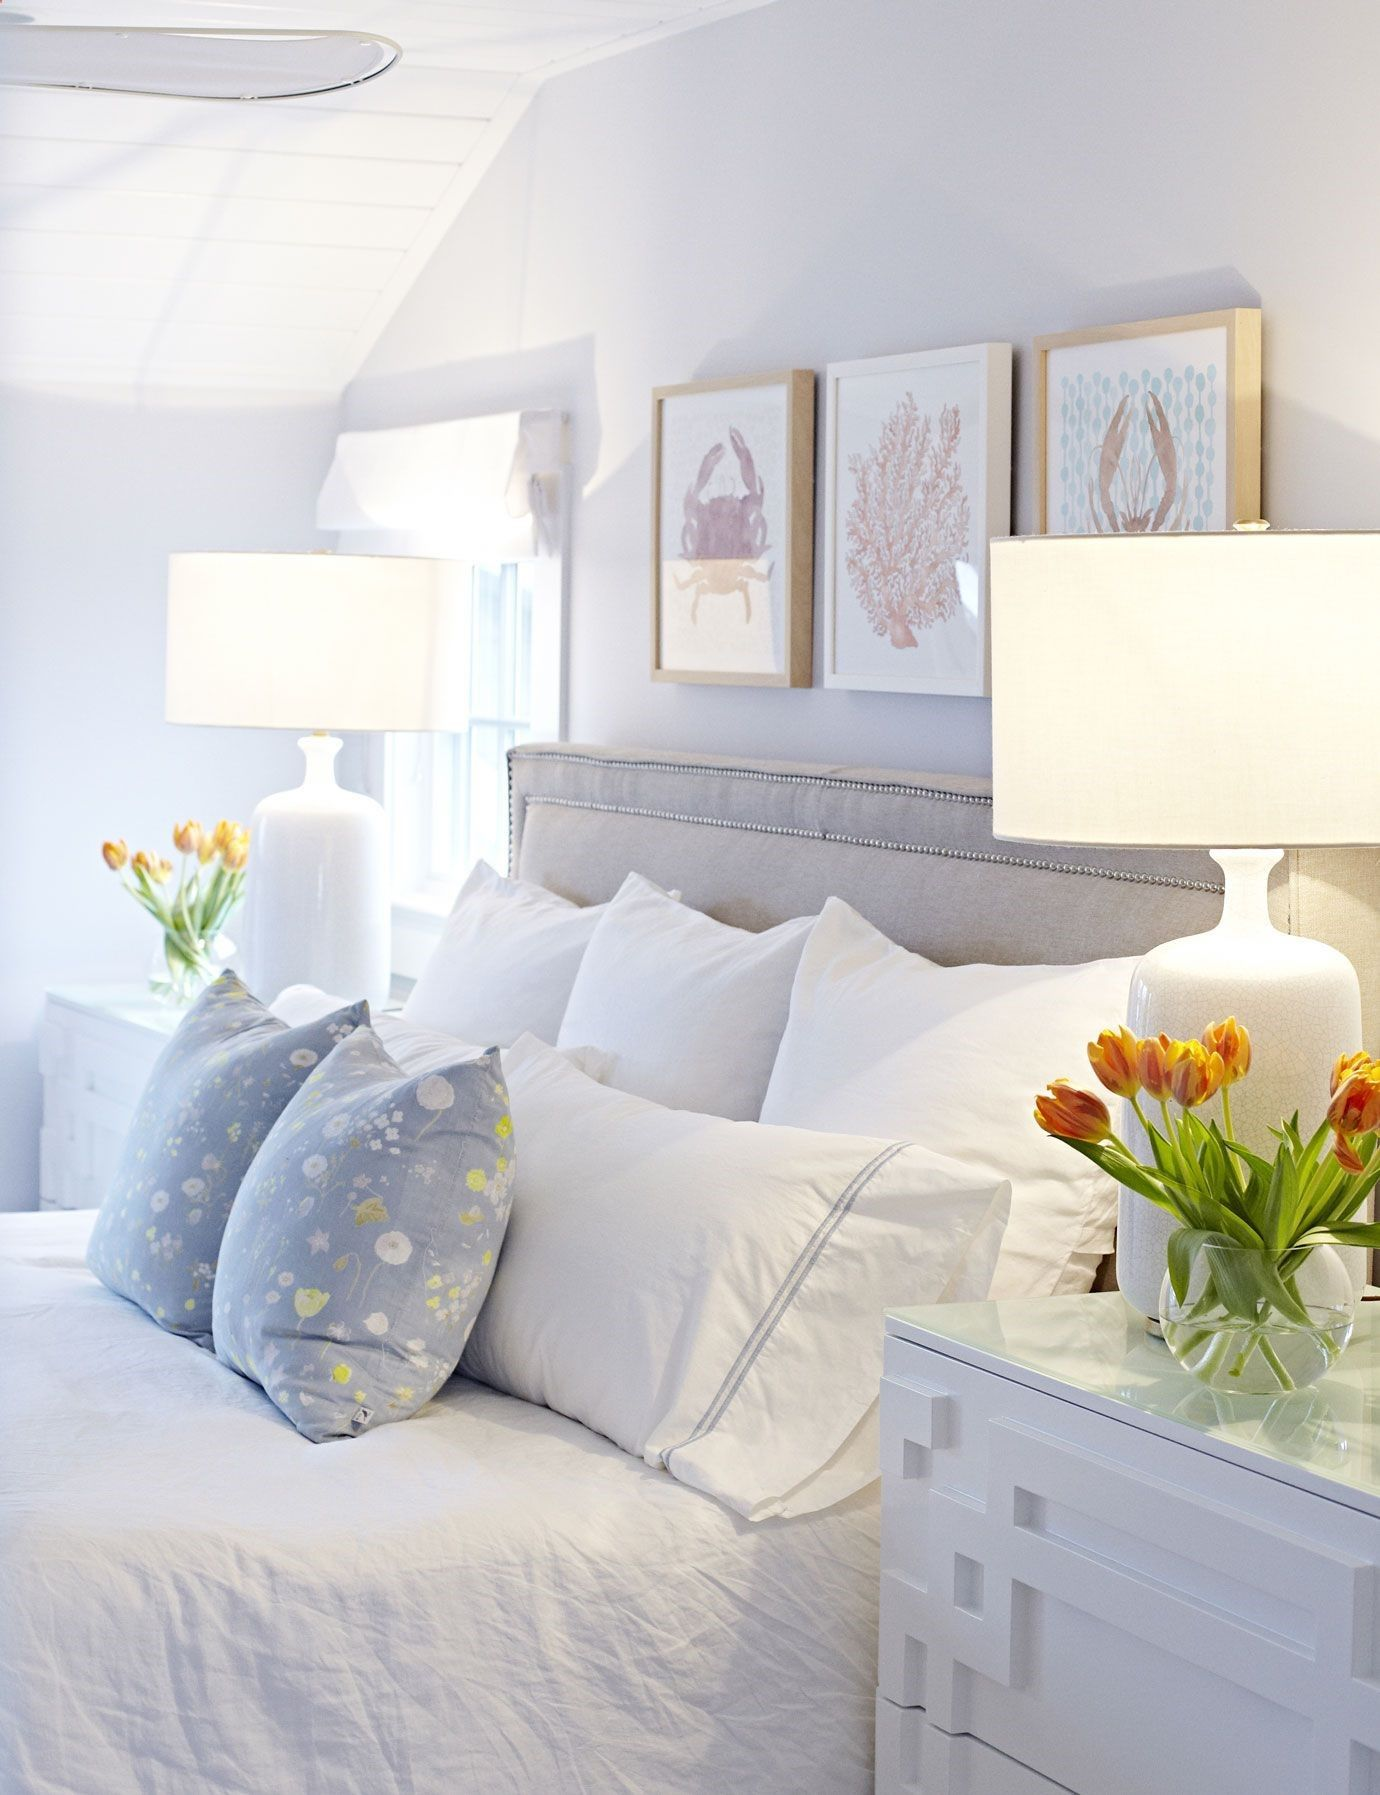 Clean And White Colour Scheme With Some Calming Blue And